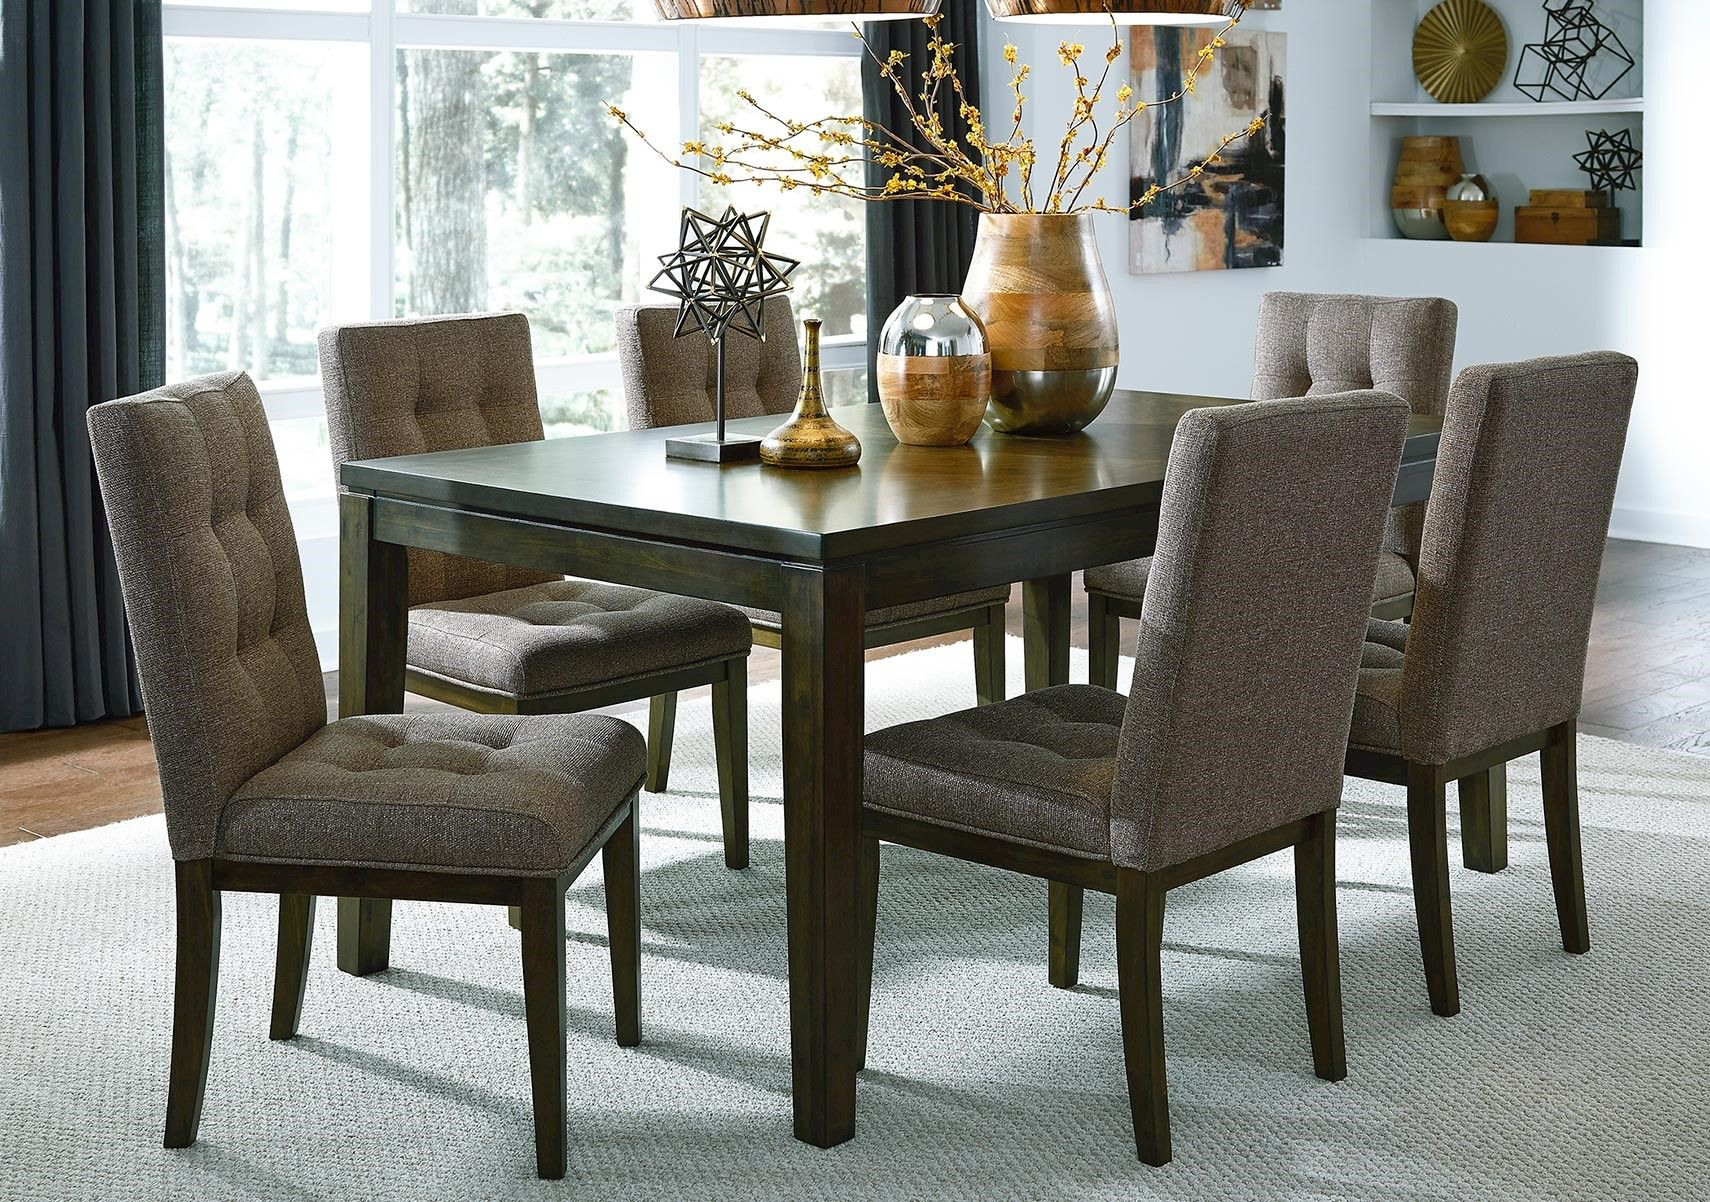 ad49338e5b Lacks | Belden Place 7-Pc Dining Room Set | Inspiration Gallery ...